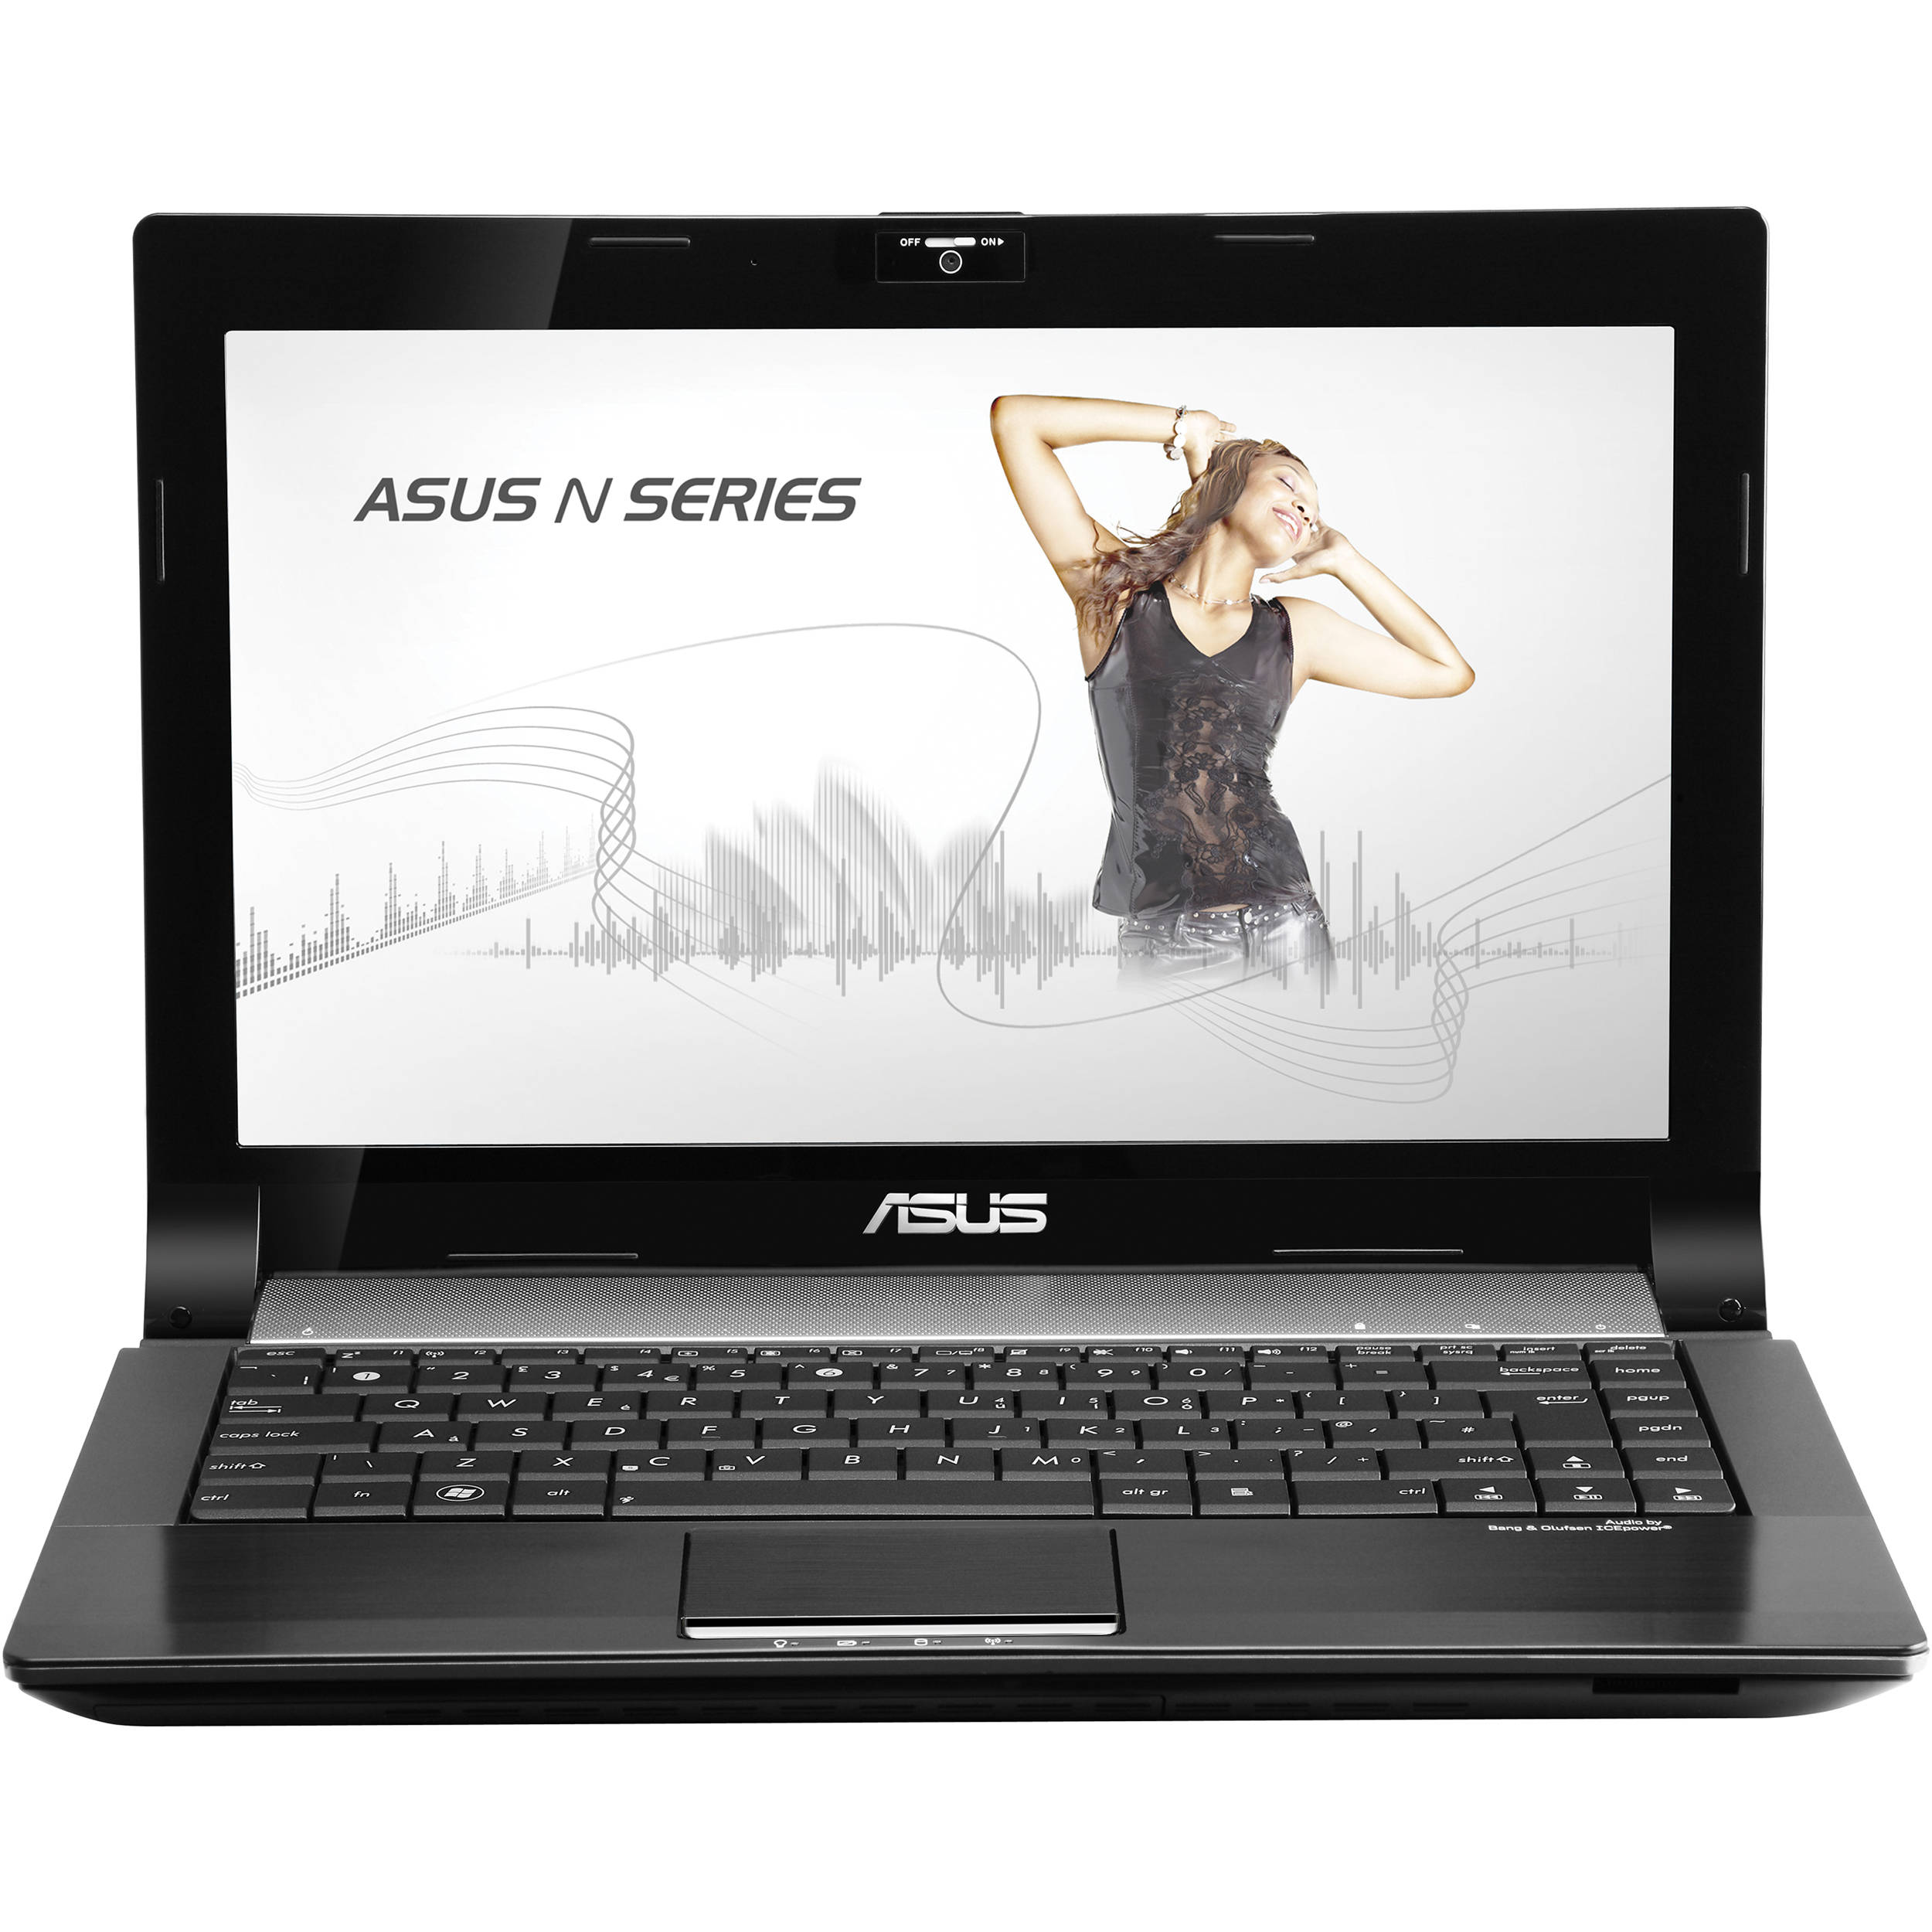 ASUS N43JF-A1 DRIVER FOR WINDOWS DOWNLOAD